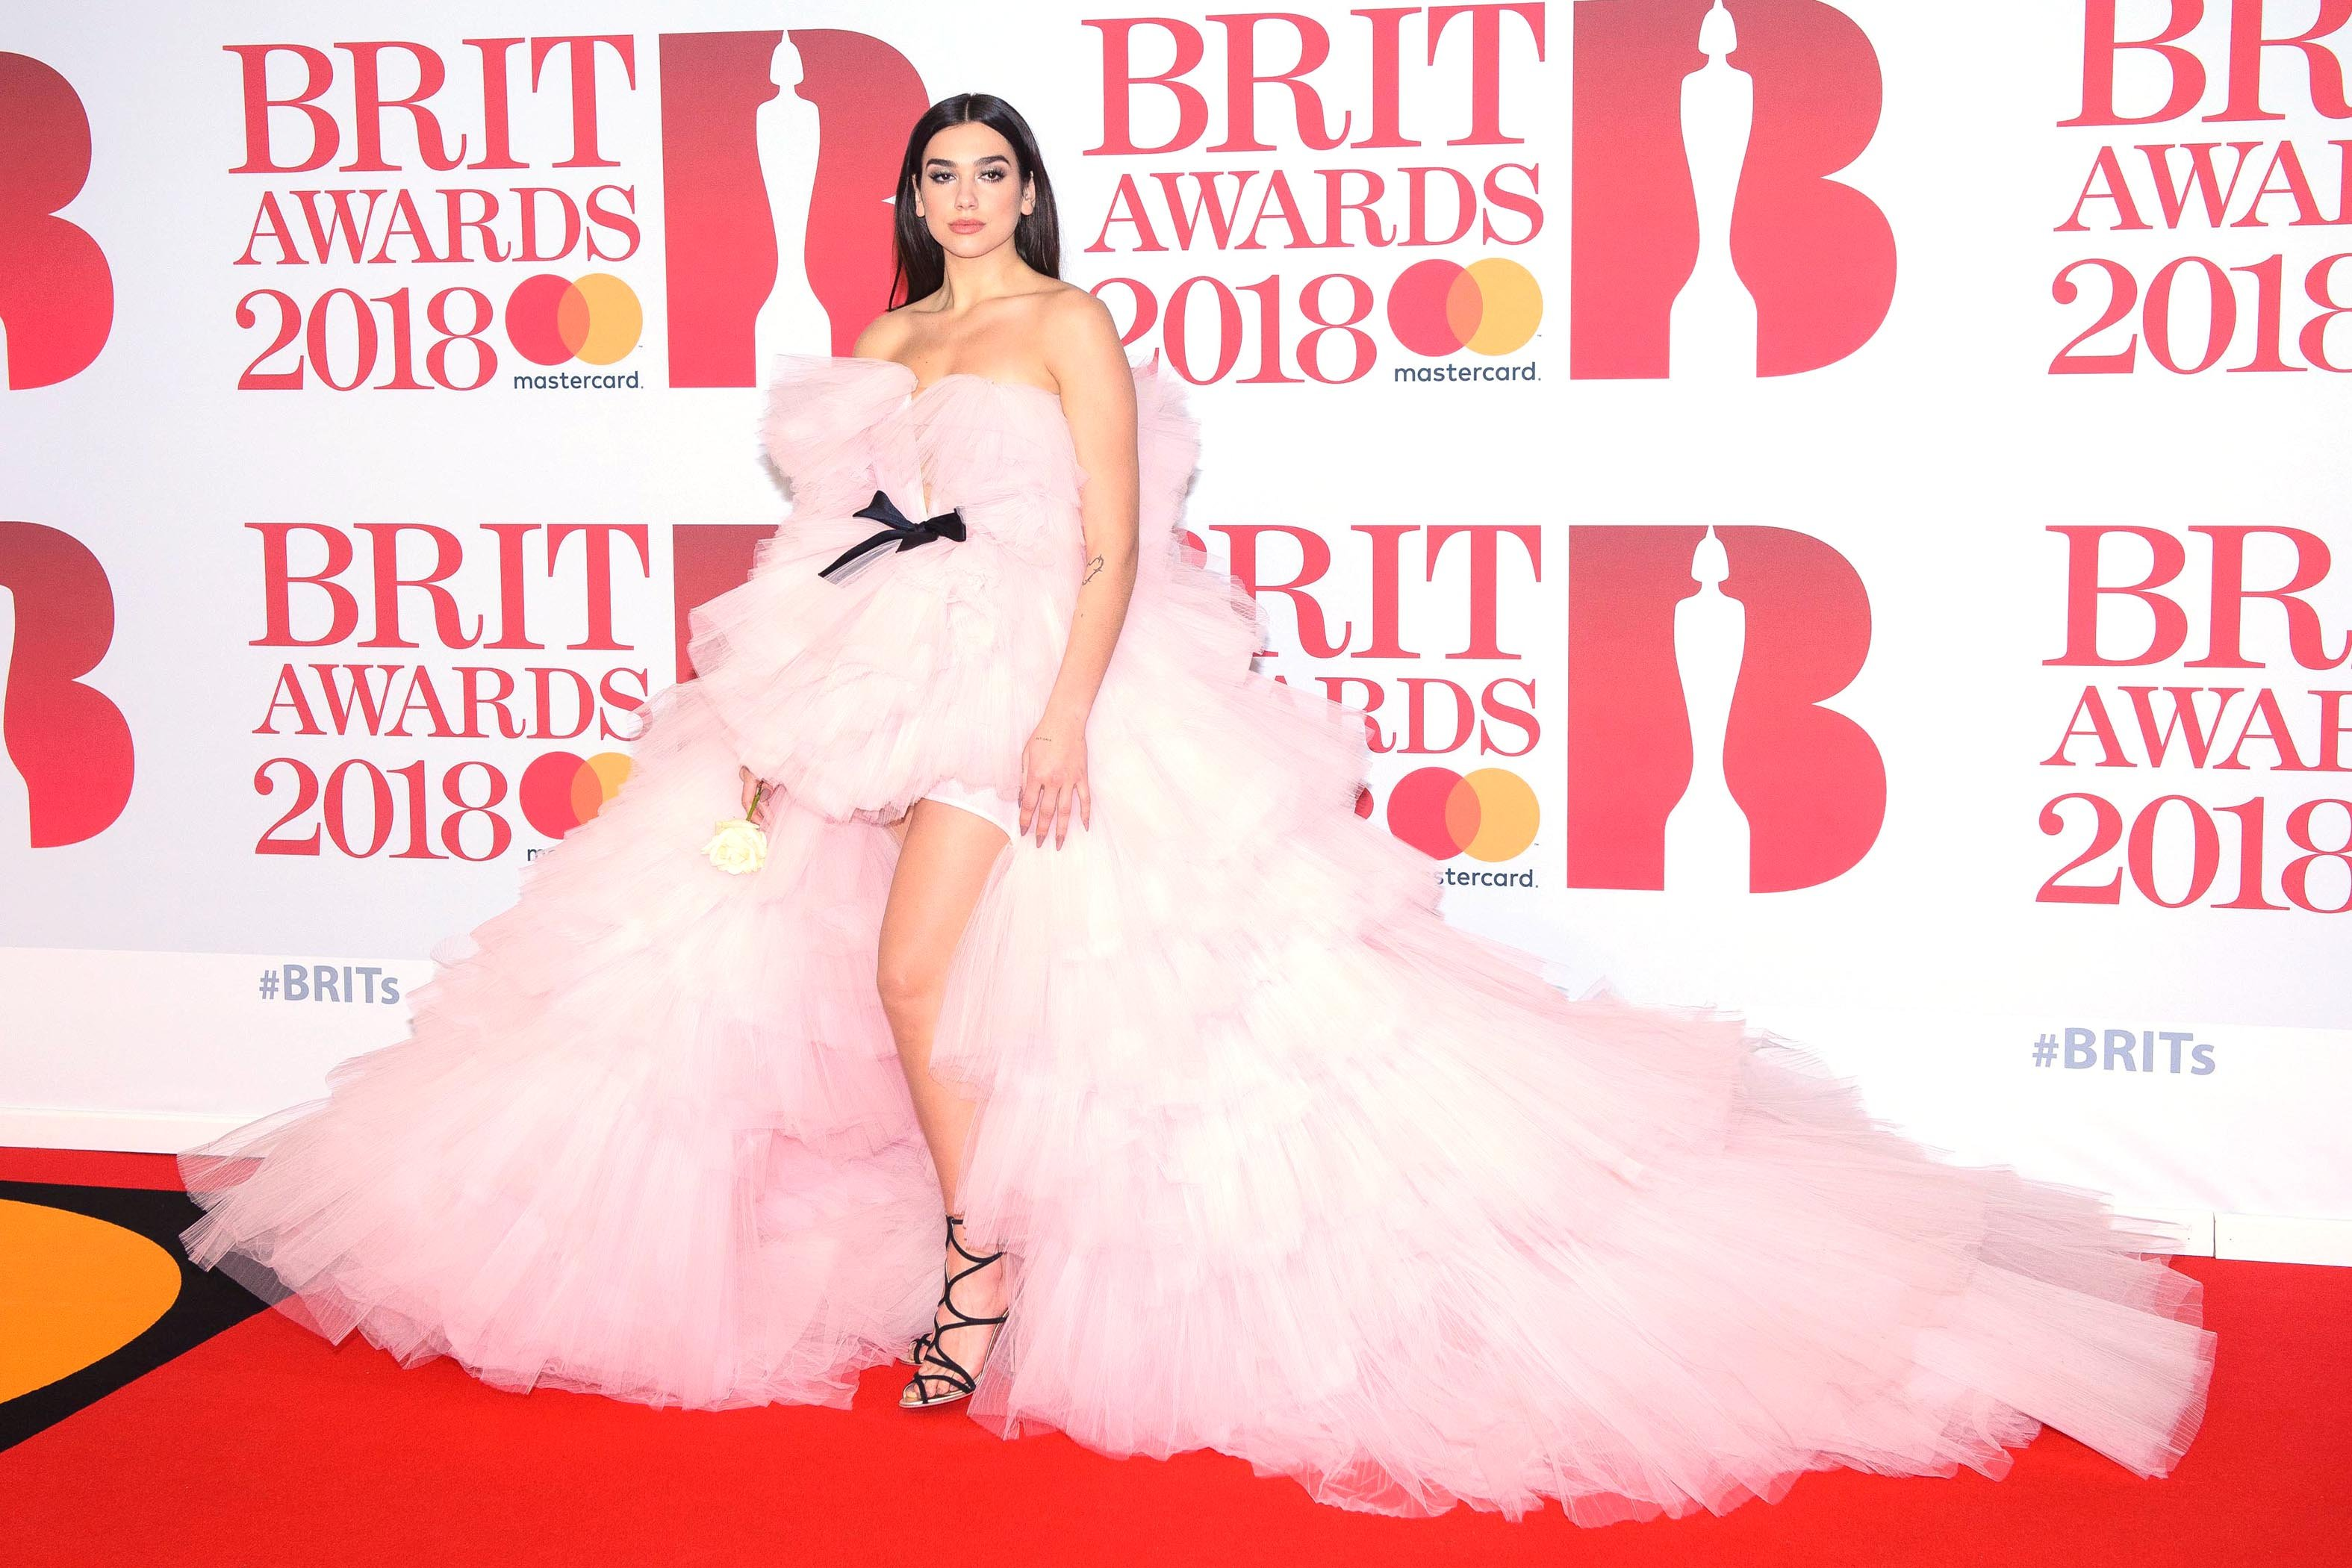 , London, England - 20180221 - The BRIT Awards 2018 at The O2 Arena  -PICTURED: Dua Lipa -, Image: 363972956, License: Rights-managed, Restrictions: , Model Release: no, Credit line: Profimedia, INSTAR Images